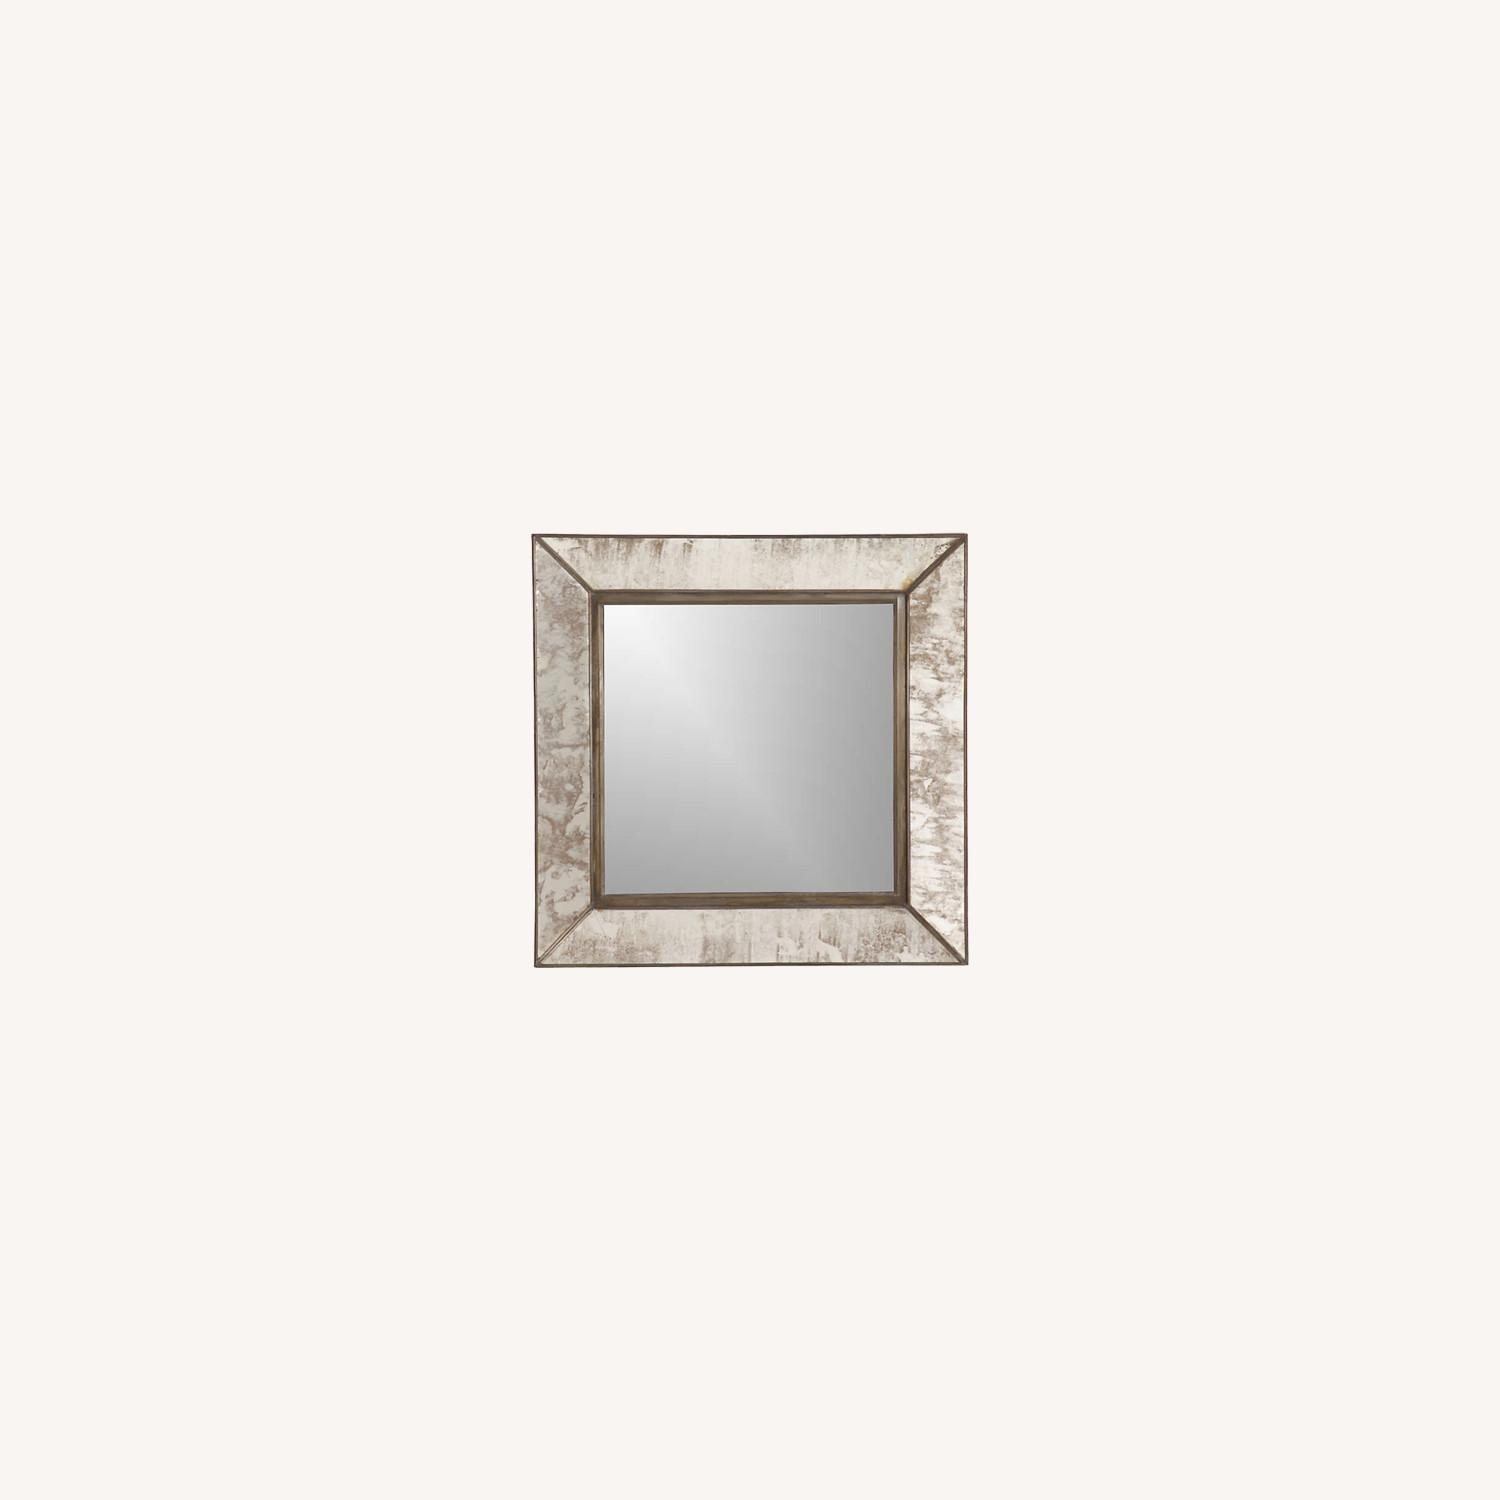 Crate and Barrel Dubois Mirror Set - image-0